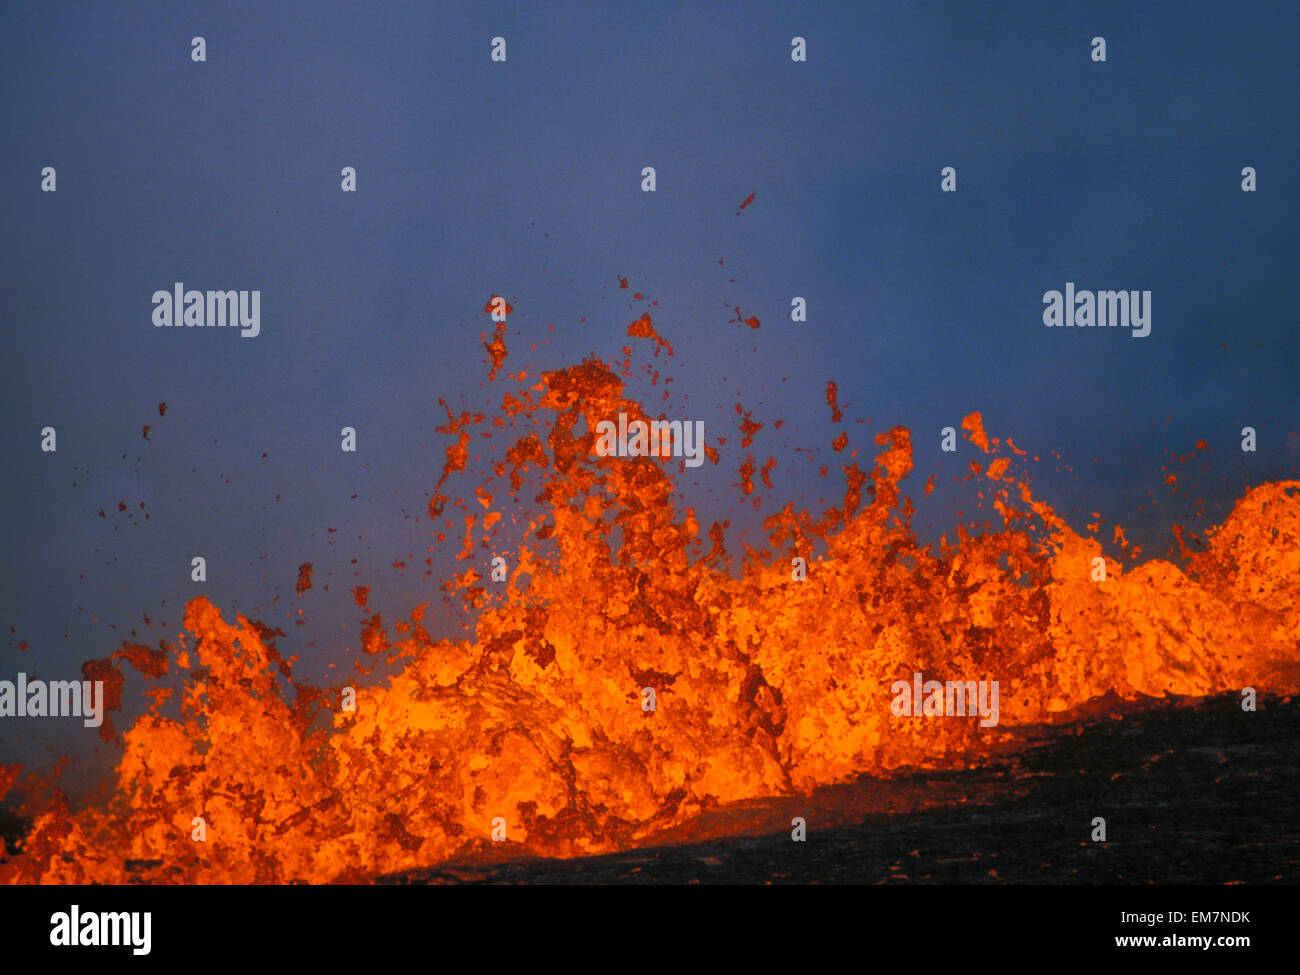 Hawaii, Big Island, Kilauea Volcano, Pu'u O'o Rift Eruption Fountaining - Stock Image